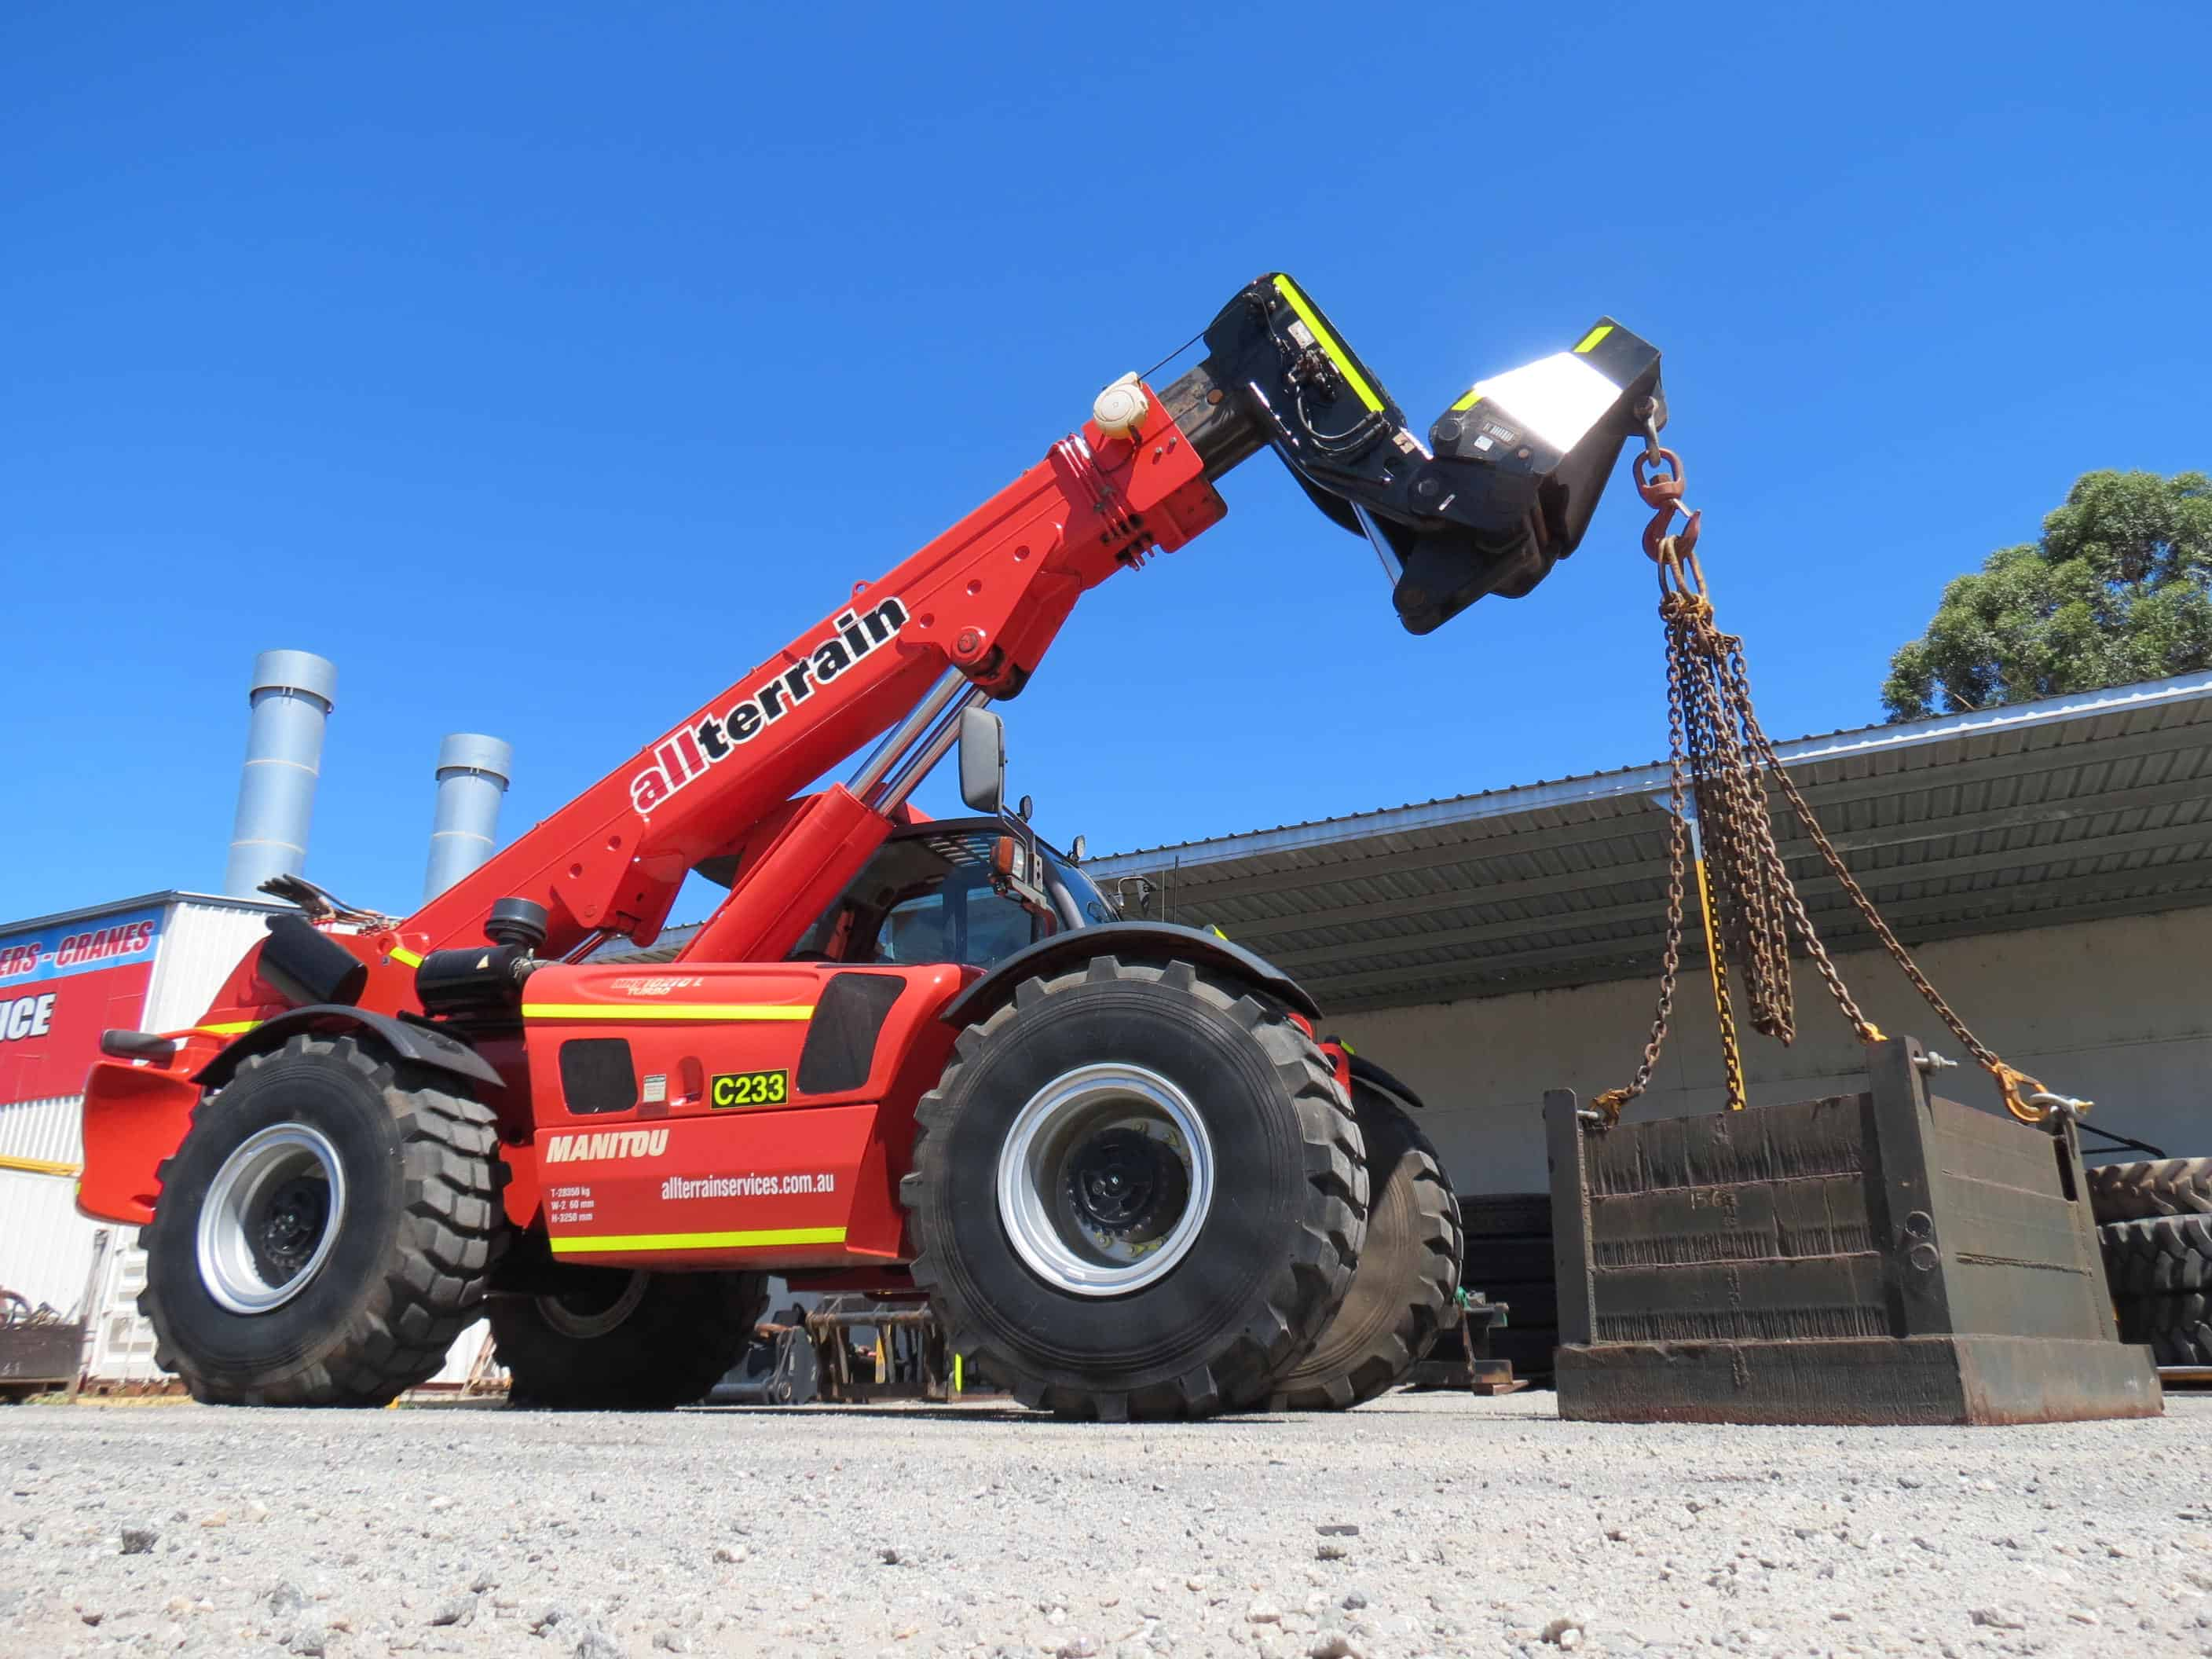 All Terrain Services Manitou MHT10210L (C233) Cranes For Sale Perth